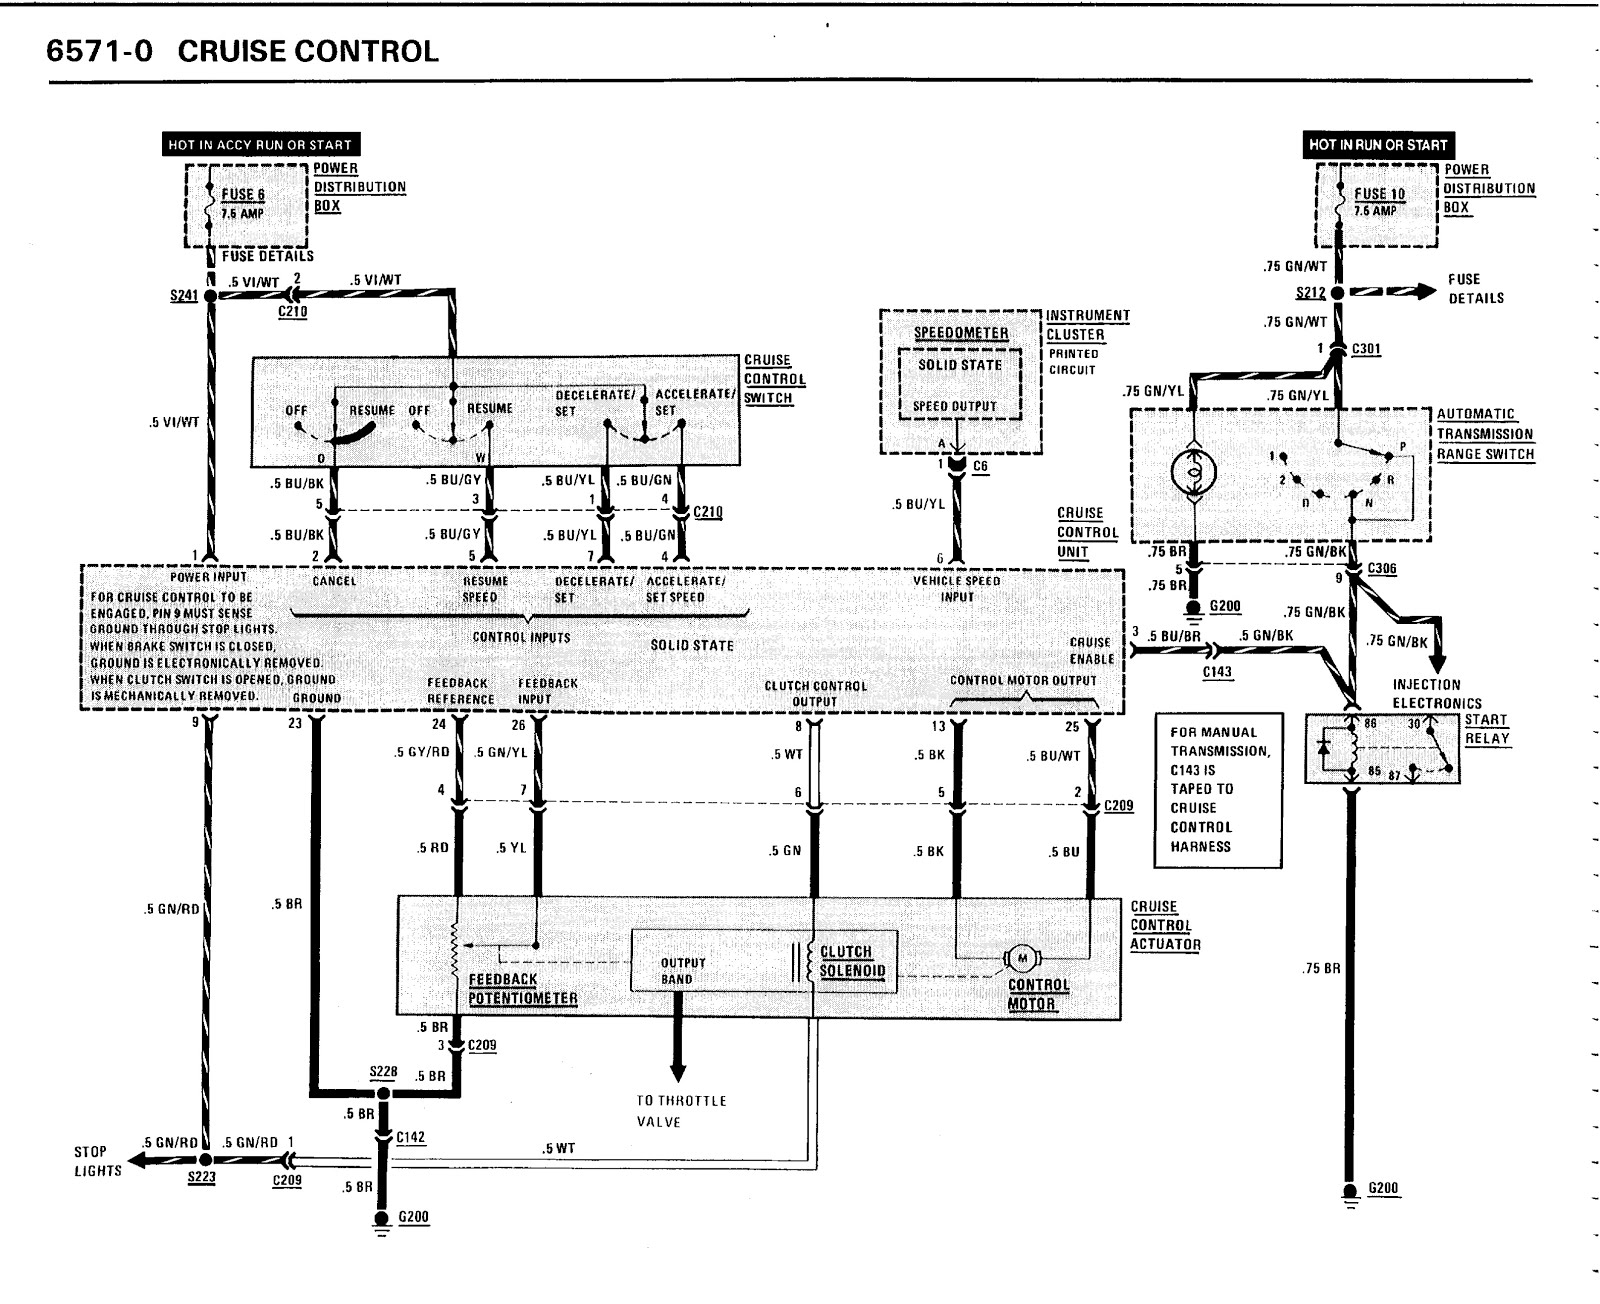 Oldsmobile Cruise Control Wiring Diagram